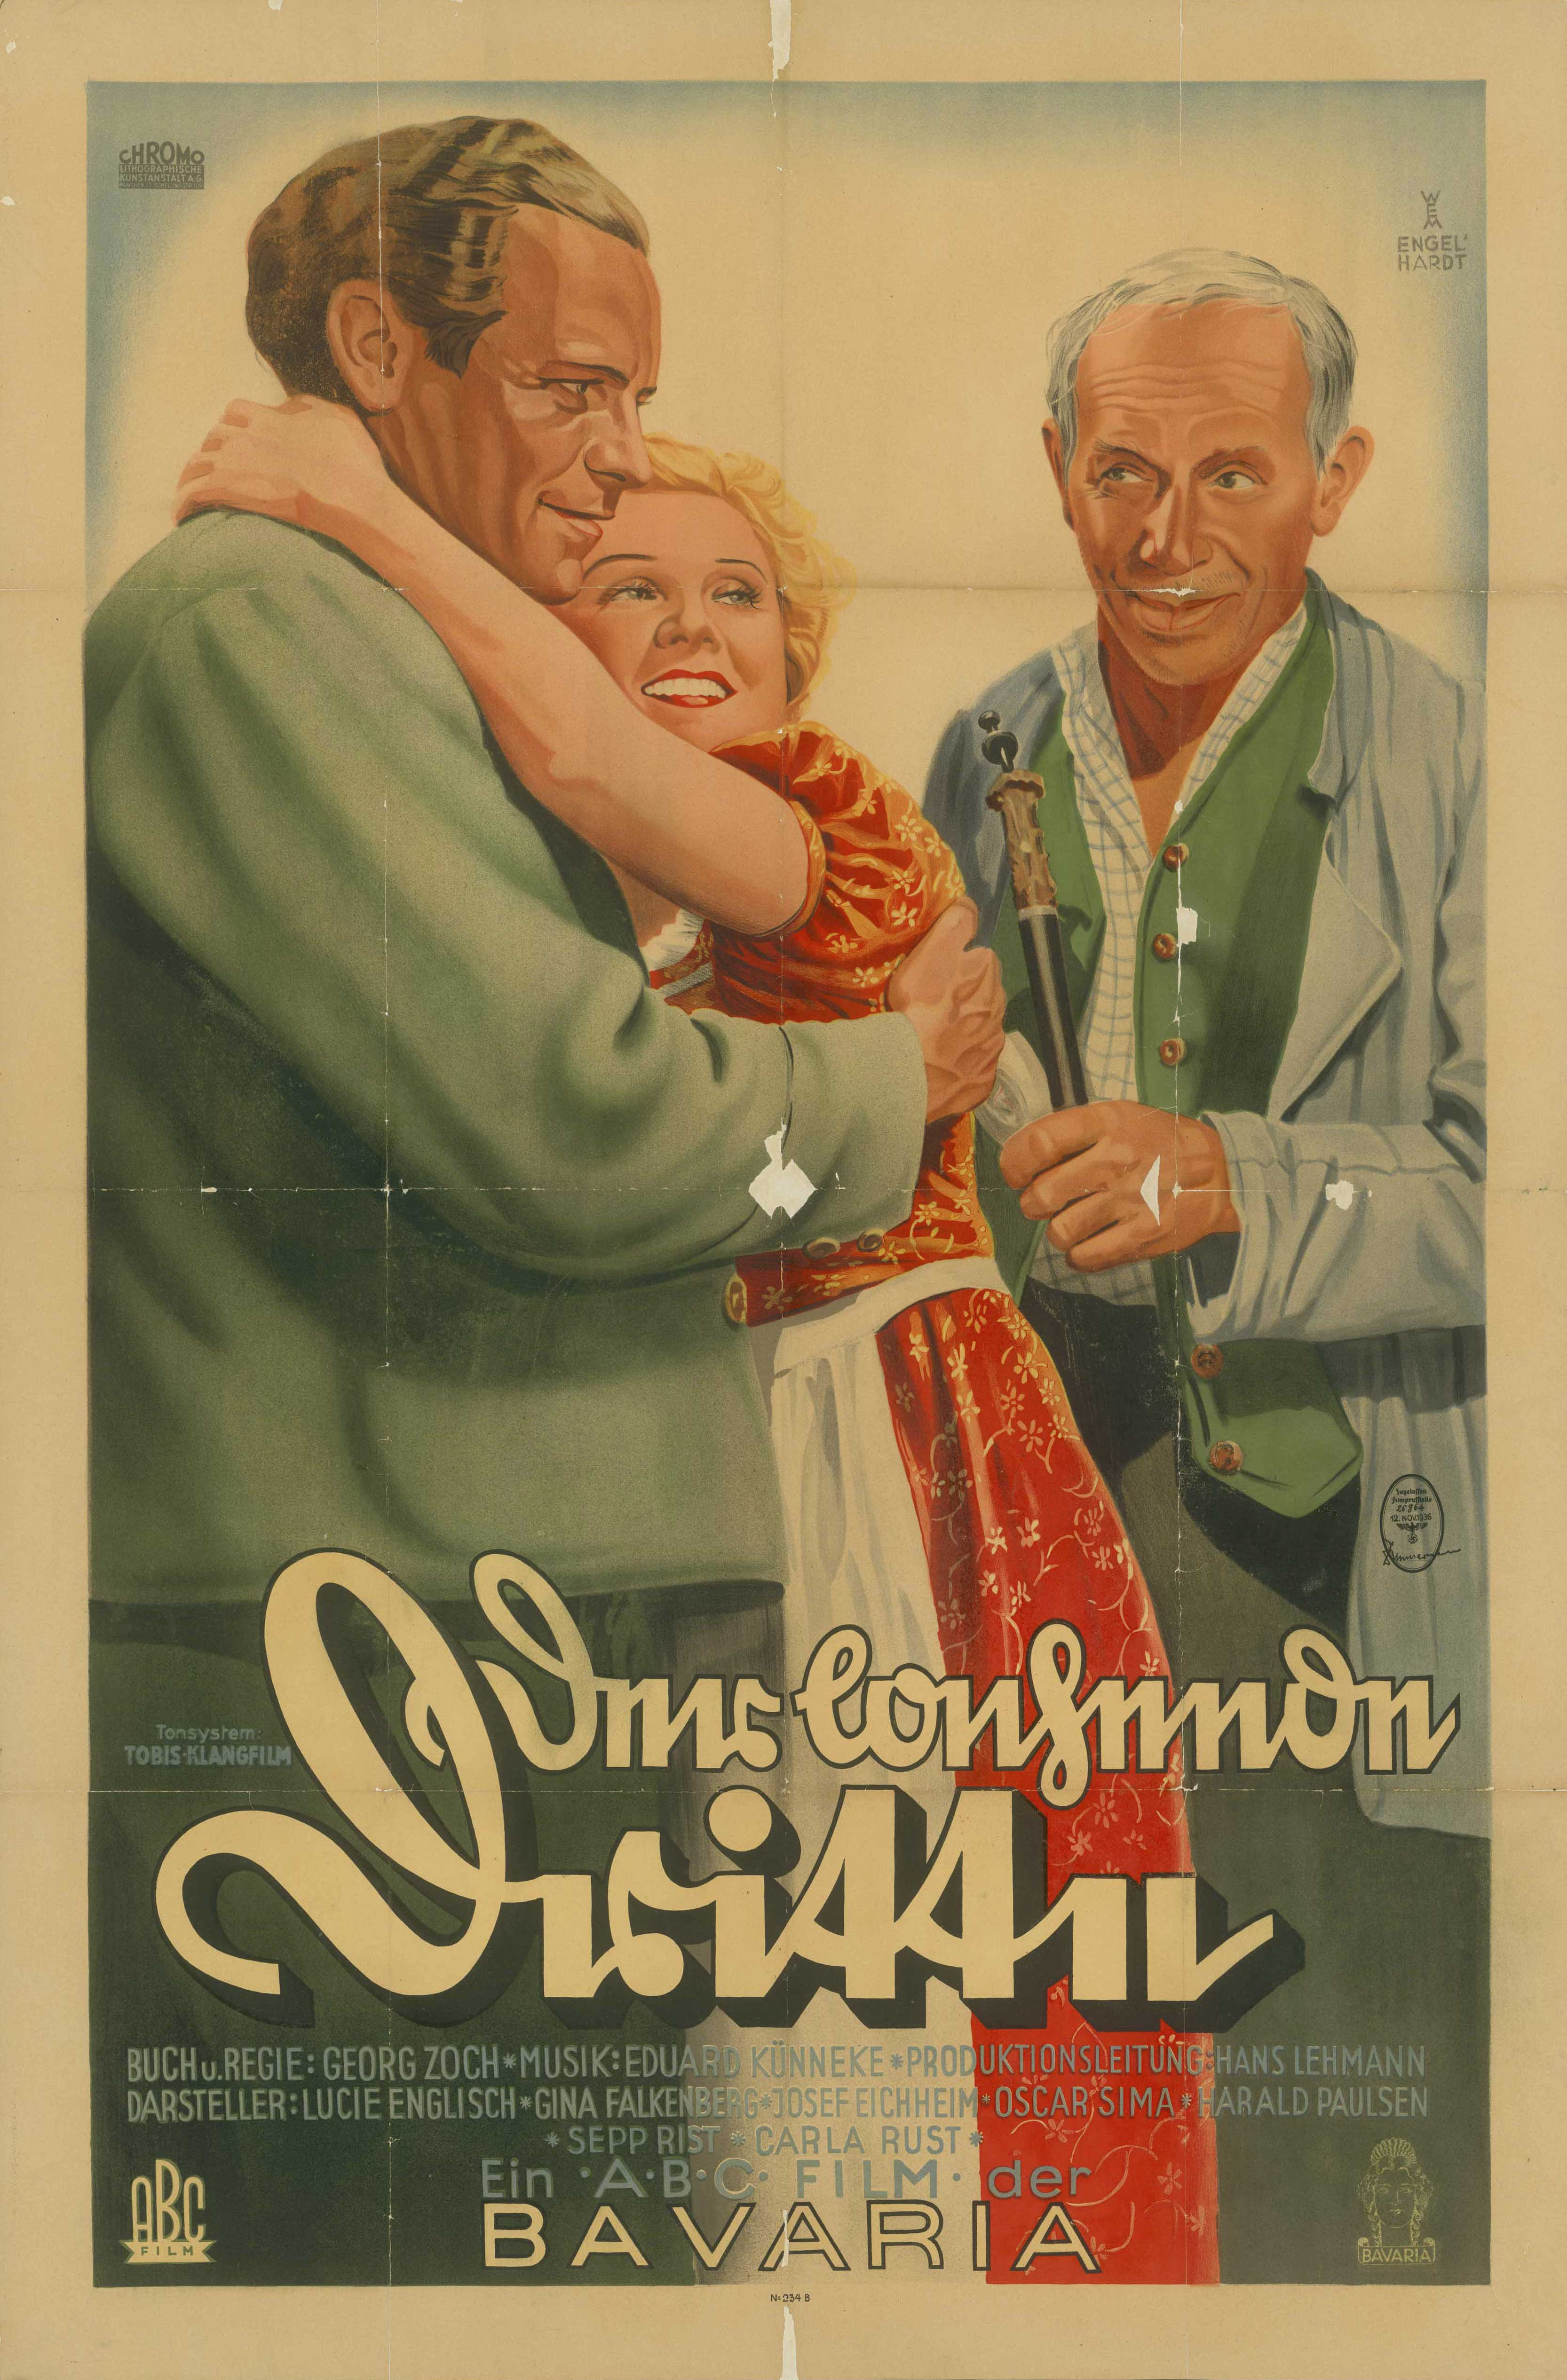 Film poster for Der lachende Dritte, Germany 1936